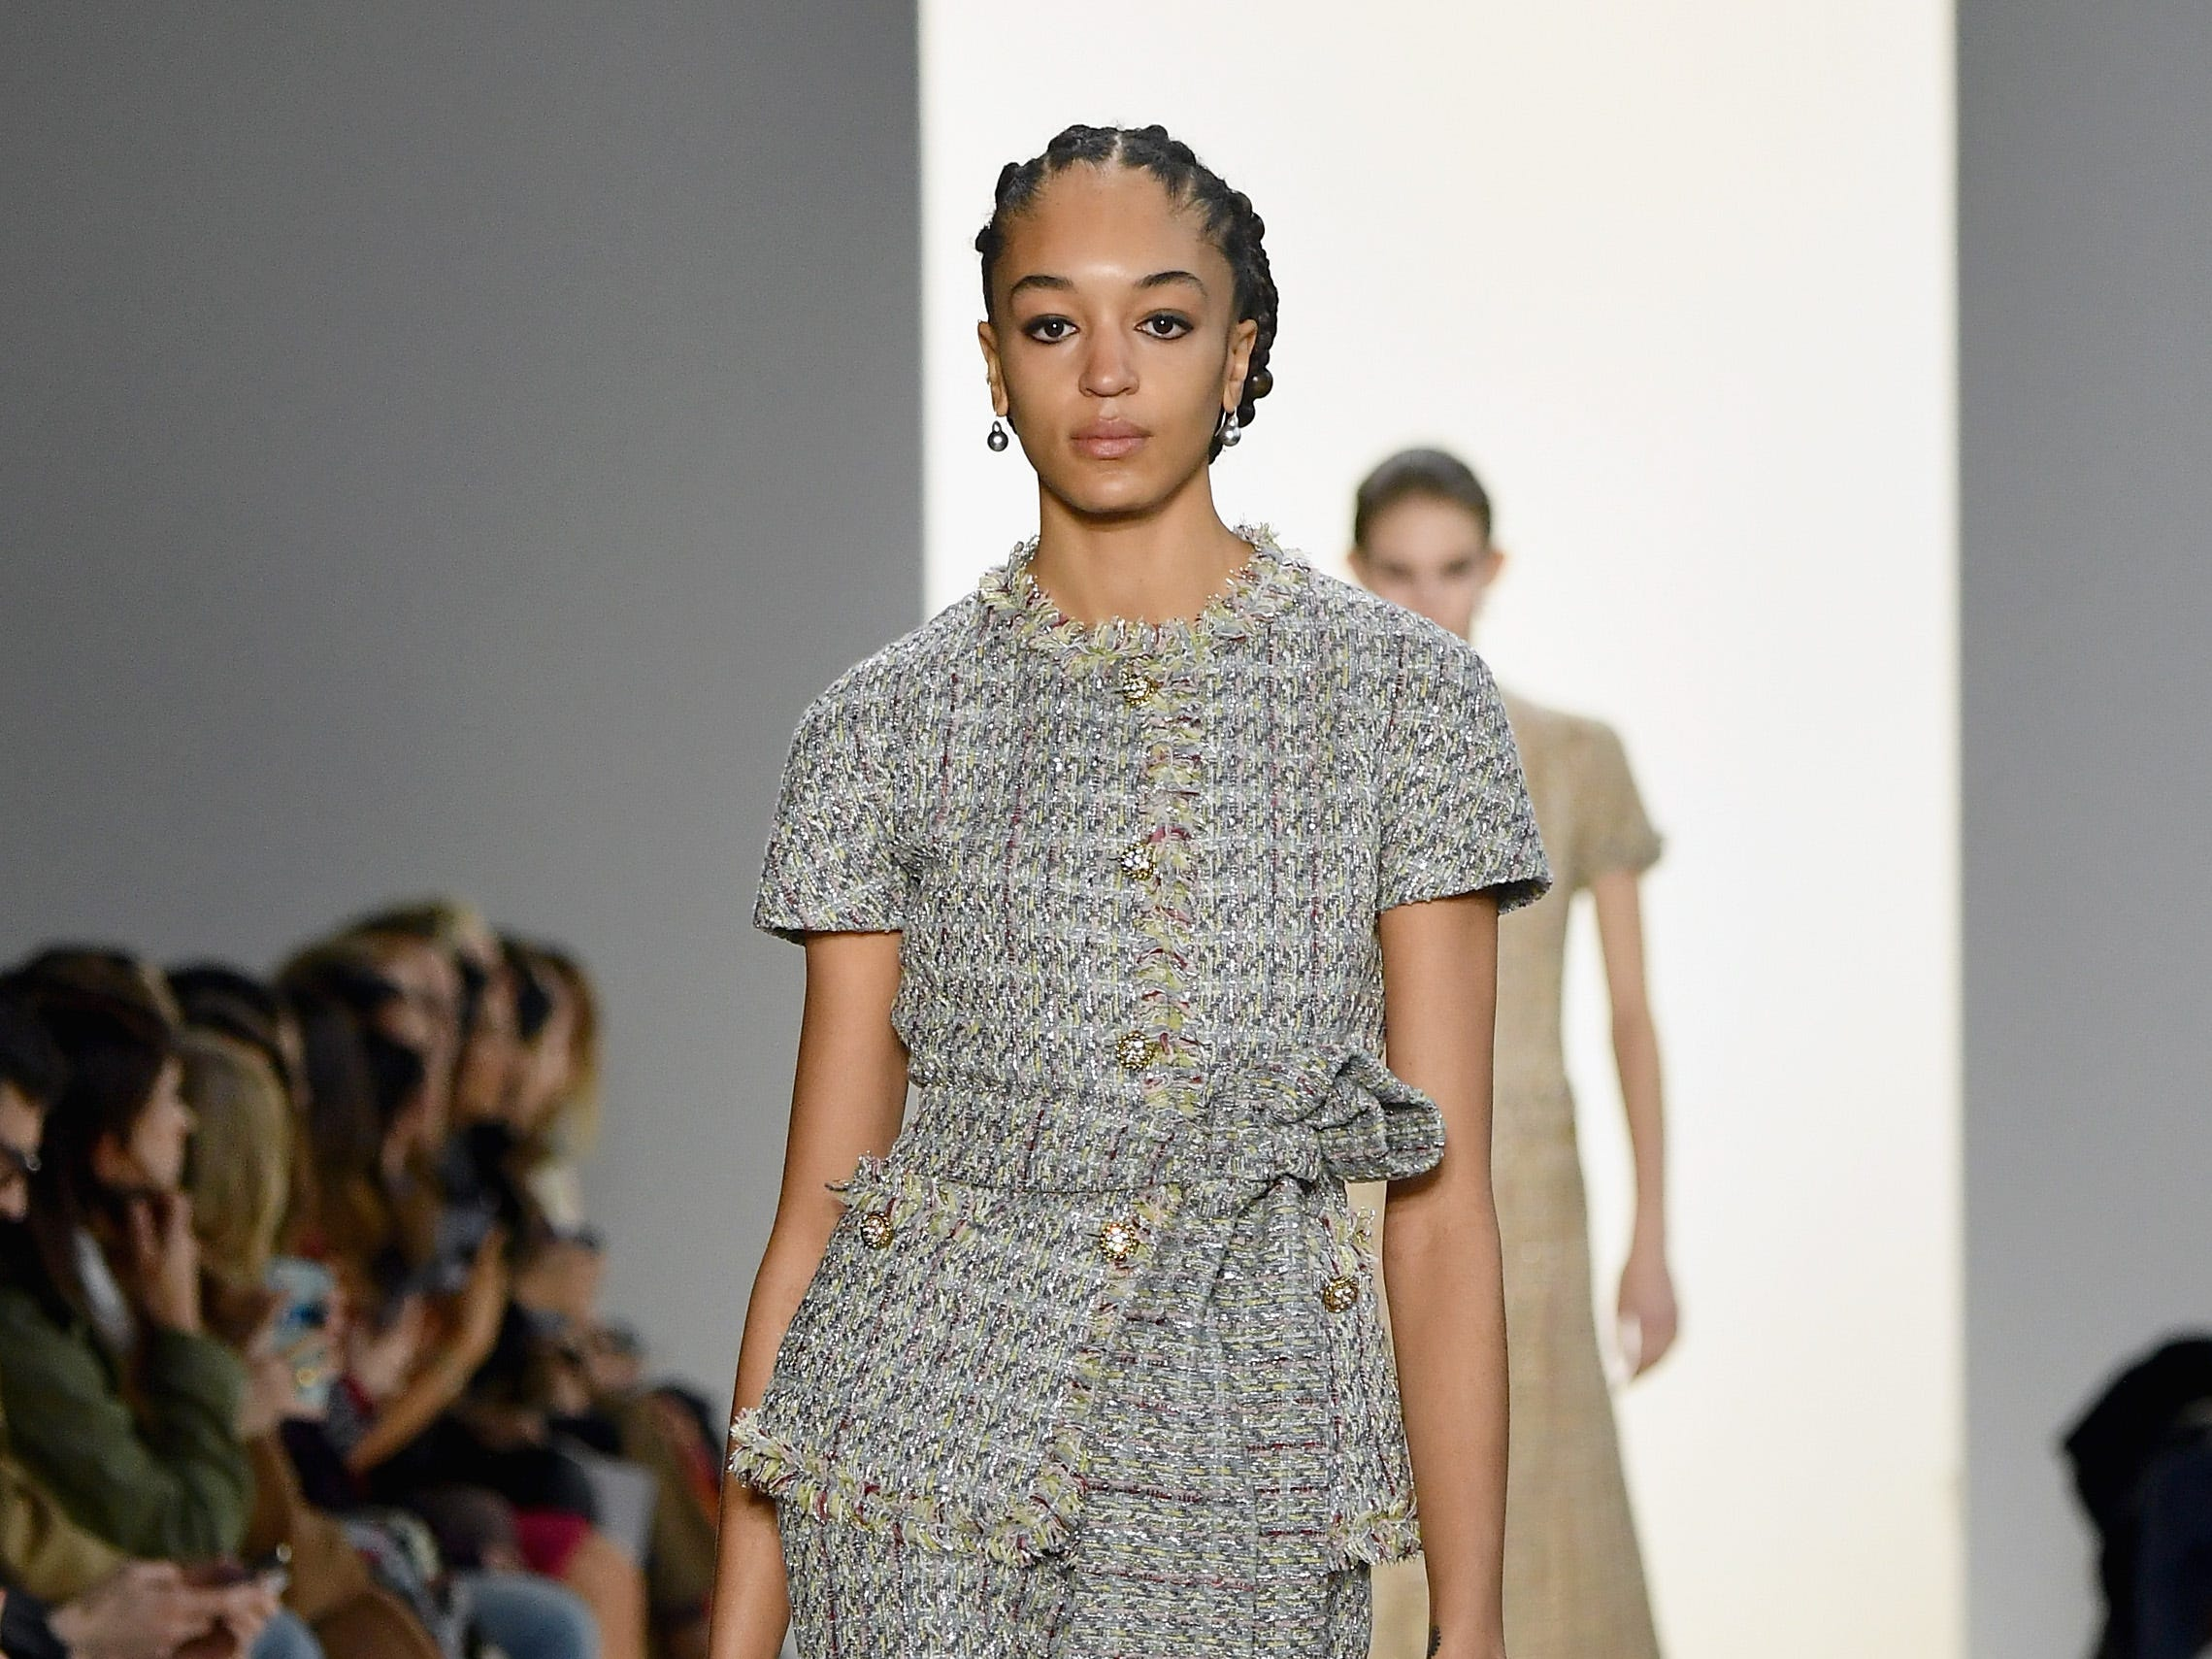 NEW YORK, NY - FEBRUARY 08:  A model walks the runway for the Brock Collection fashion show during New York Fashion Week: The Shows at Gallery I at Spring Studios on February 8, 2019 in New York City.  (Photo by Mike Coppola/Getty Images for NYFW: The Shows) ORG XMIT: 775289359 ORIG FILE ID: 1095524796